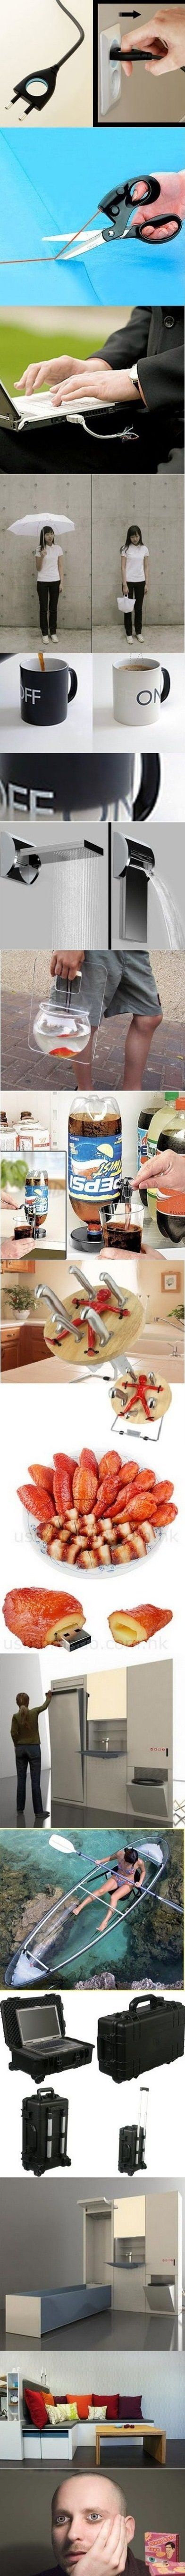 Best Crazy Inventions Ideas On Pinterest Invention Ideas - 20 strange awesome inventions need life